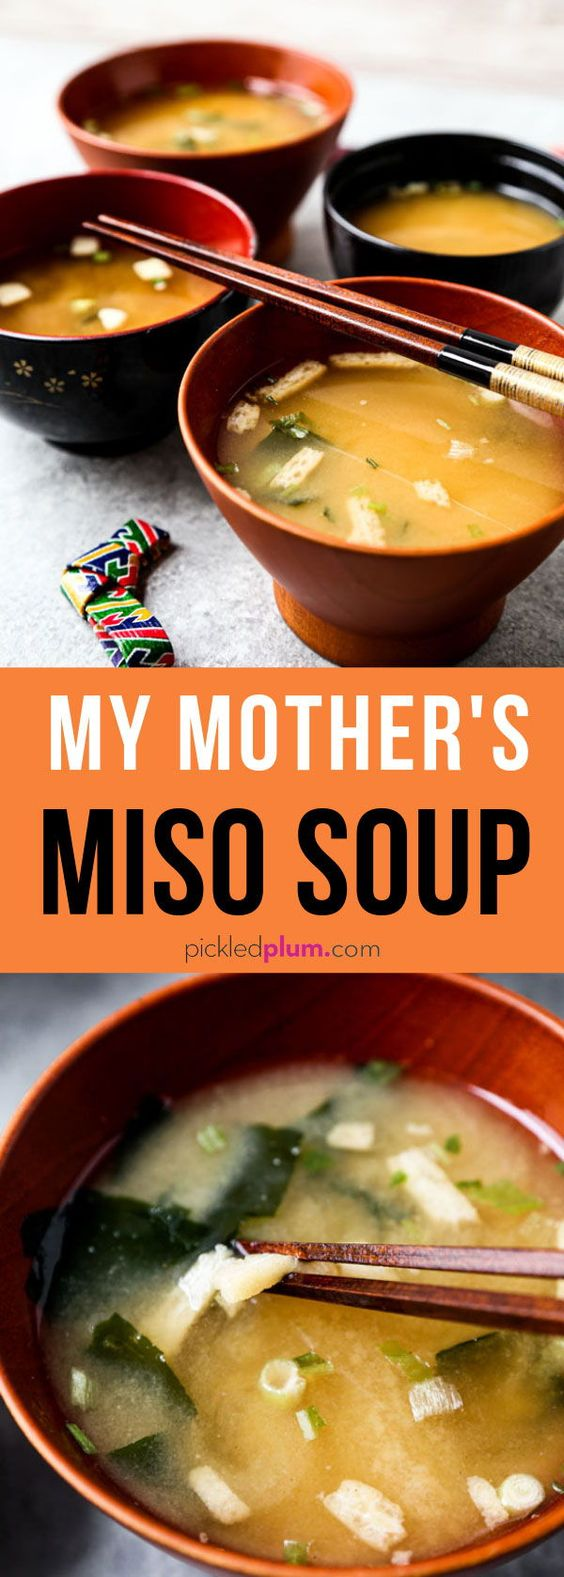 My Mother's Miso Soup